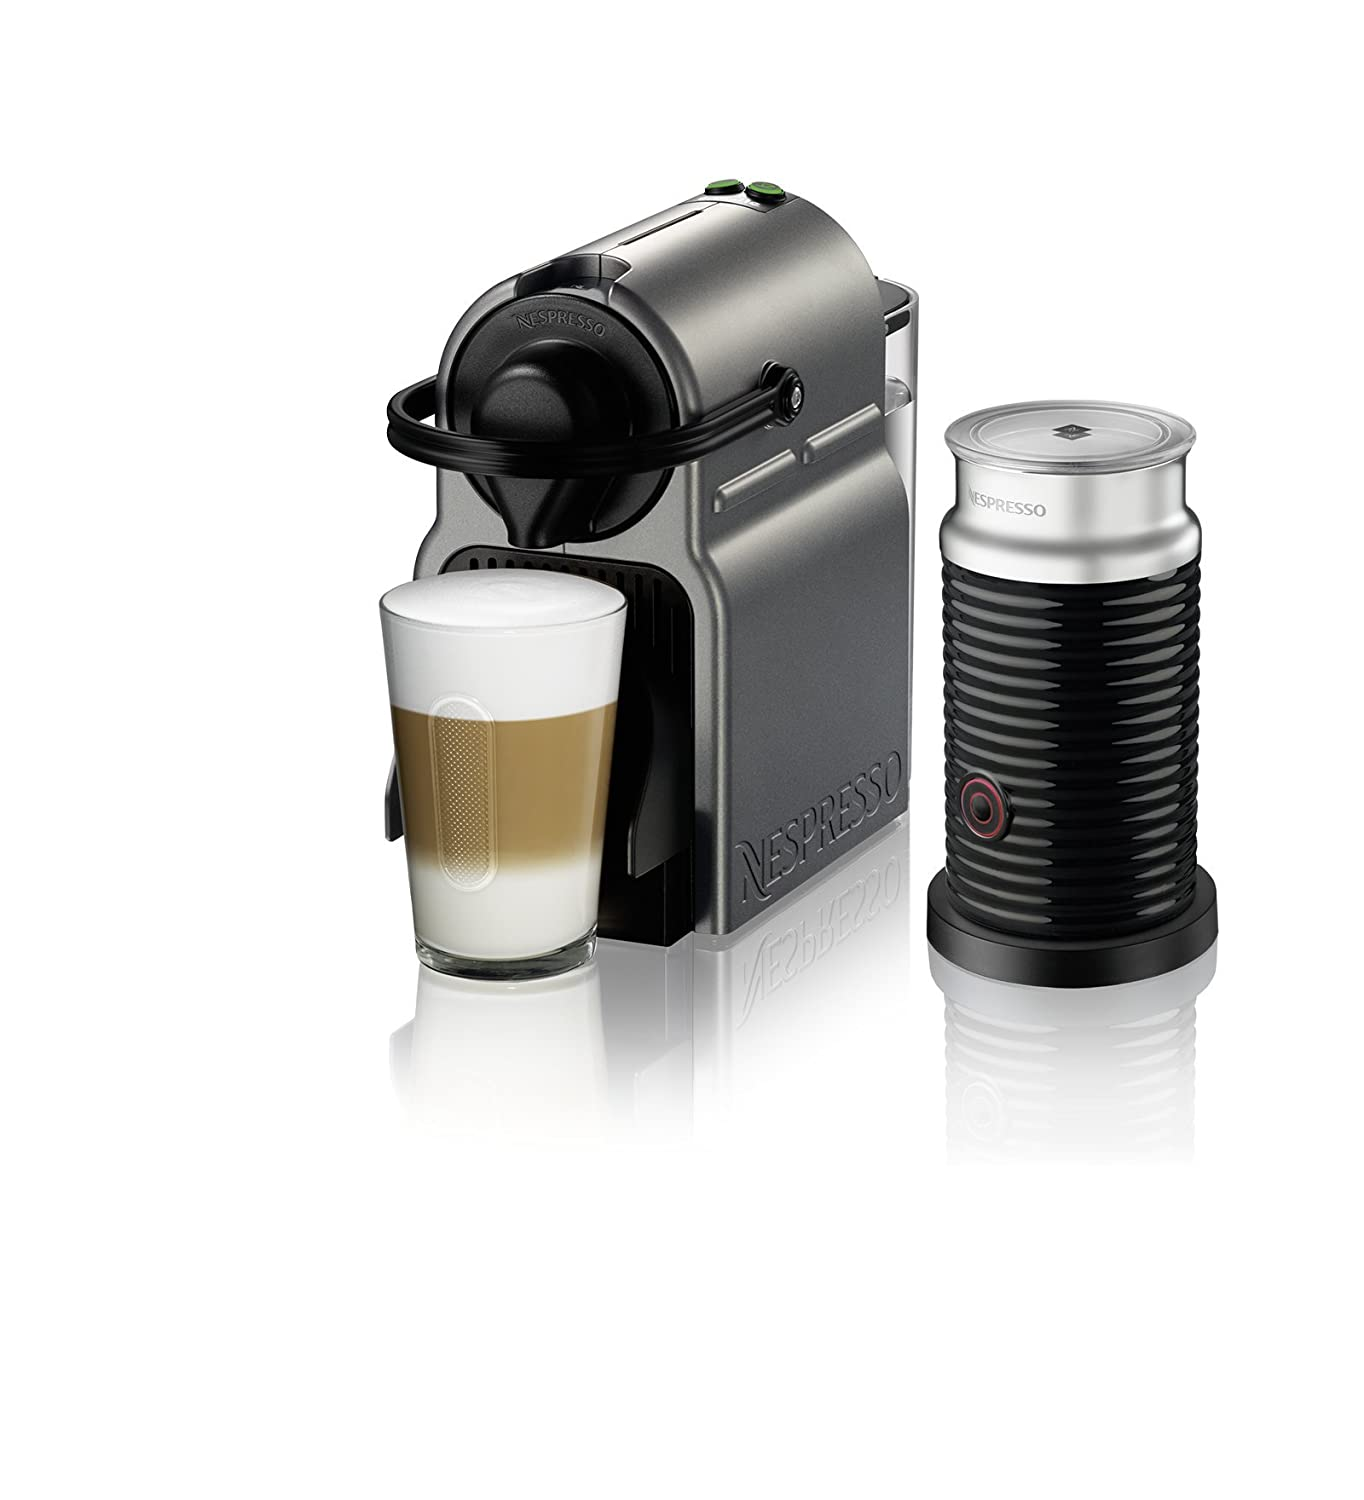 Nespresso Inissia Original Espresso Machine with Aeroccino Milk Frother Review 1